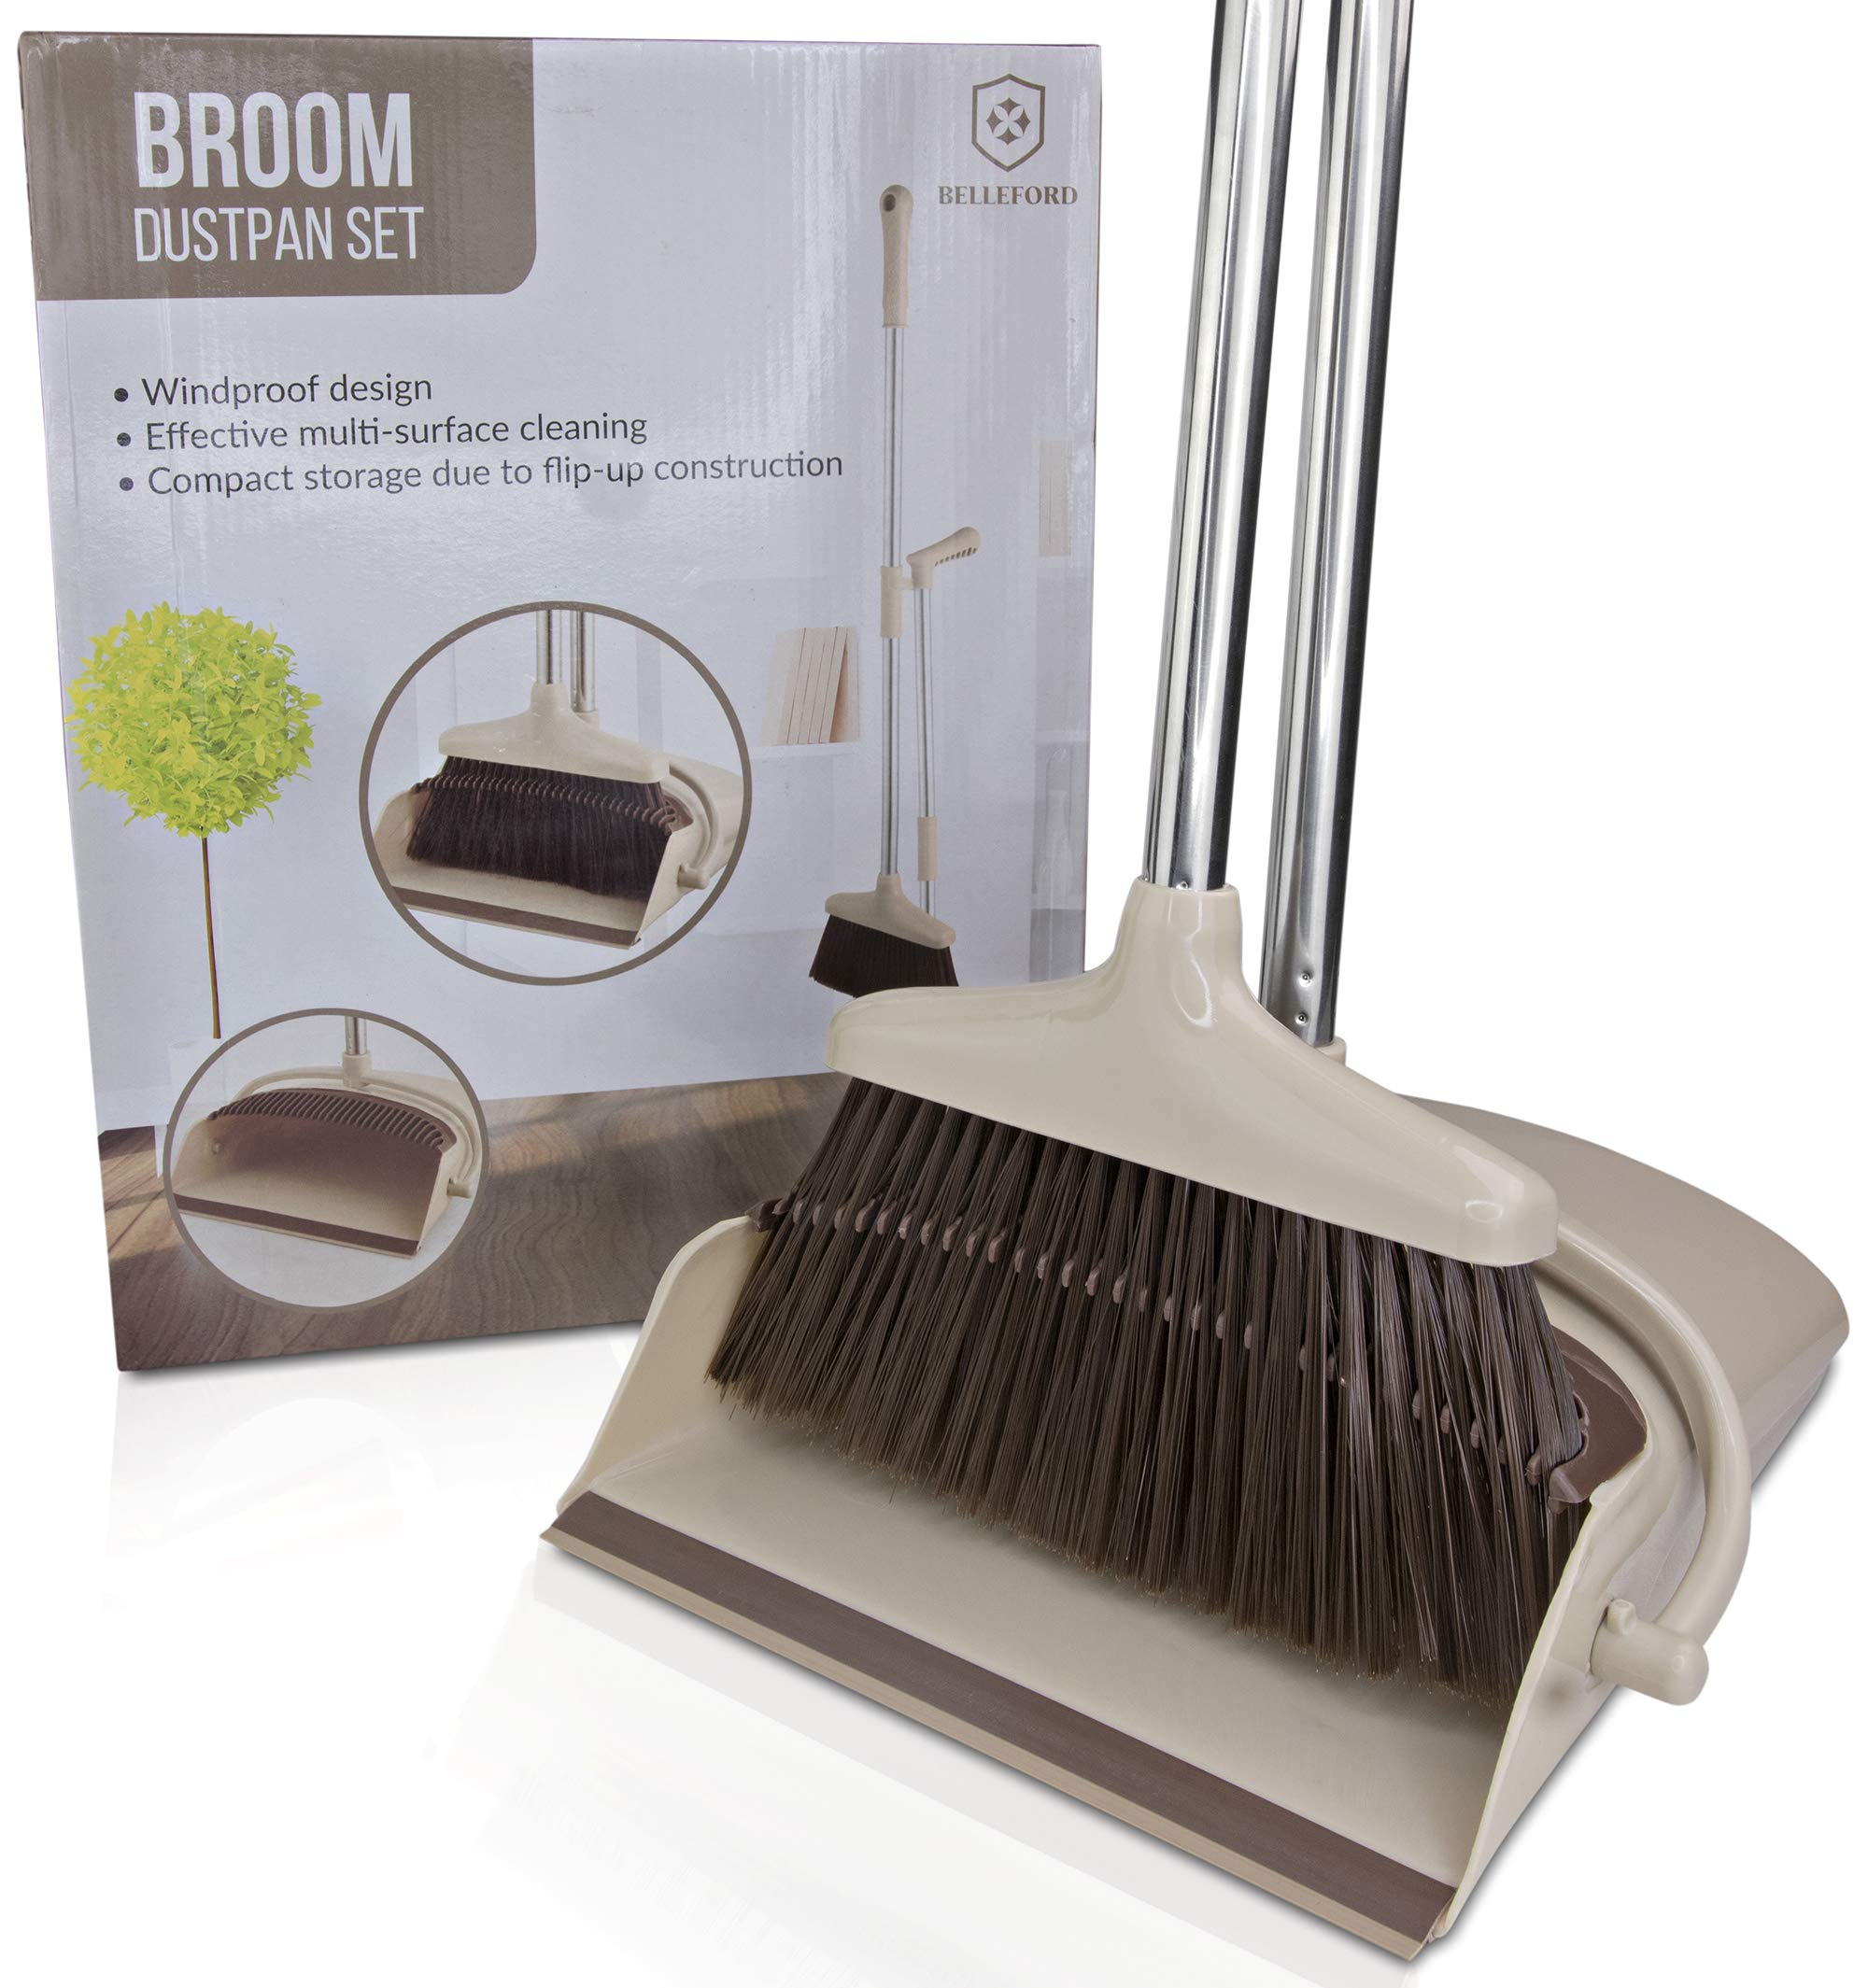 Broom and Dustpan Set [2019 Version] - Stand Up Brush and Dust Pan Combo for Upright Cleaning - Remove Hair with Built-in Wisp Scraper - Kitchen, Outdoor, Hardwood Floor & Garage Tiles Clean Supplies by Belleford (Image #9)